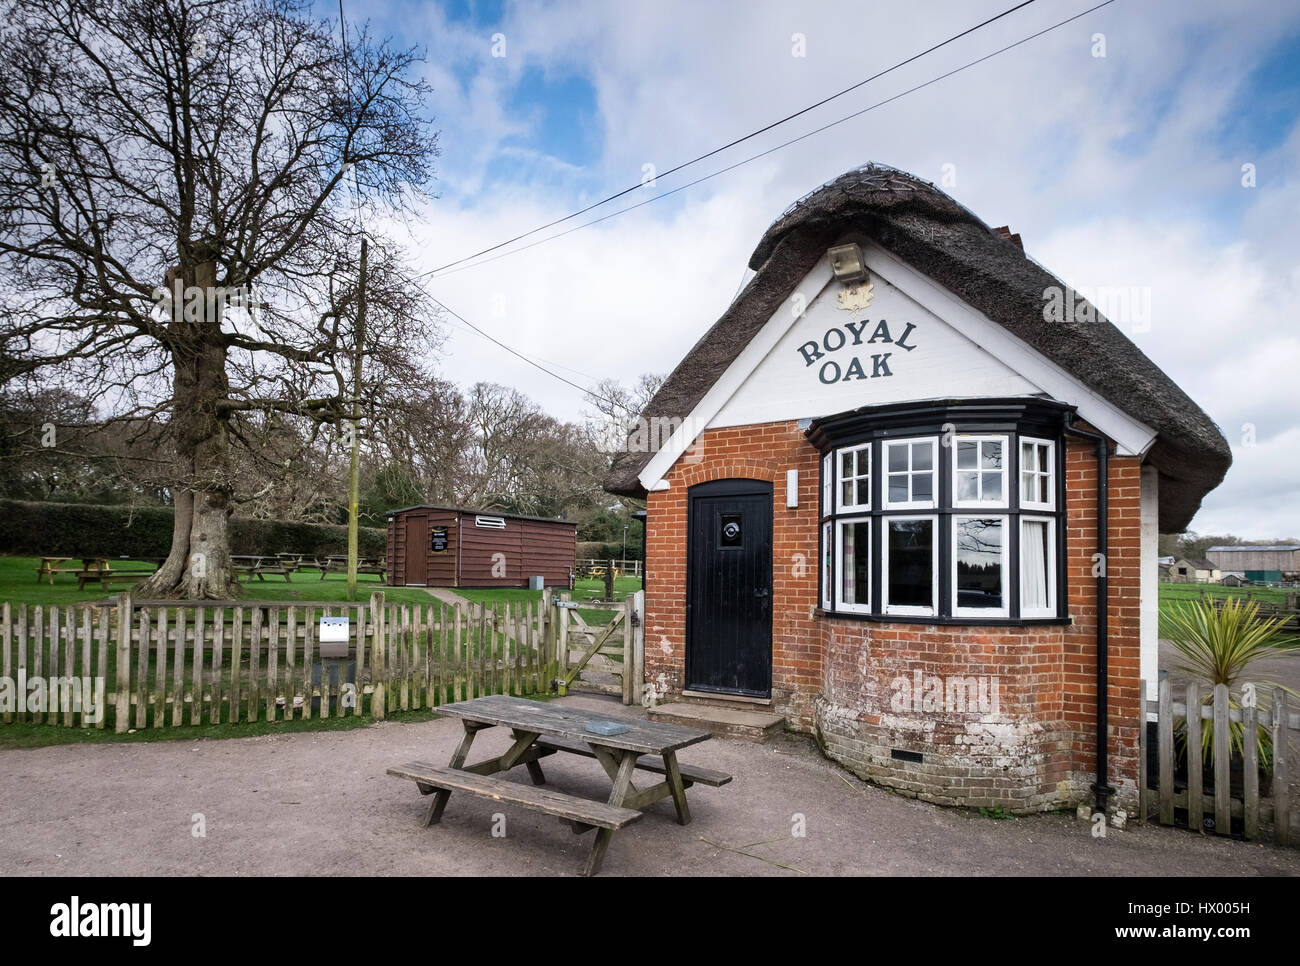 The Royal Oak pub in Fritham in the New Forest, Hampshire - Stock Image